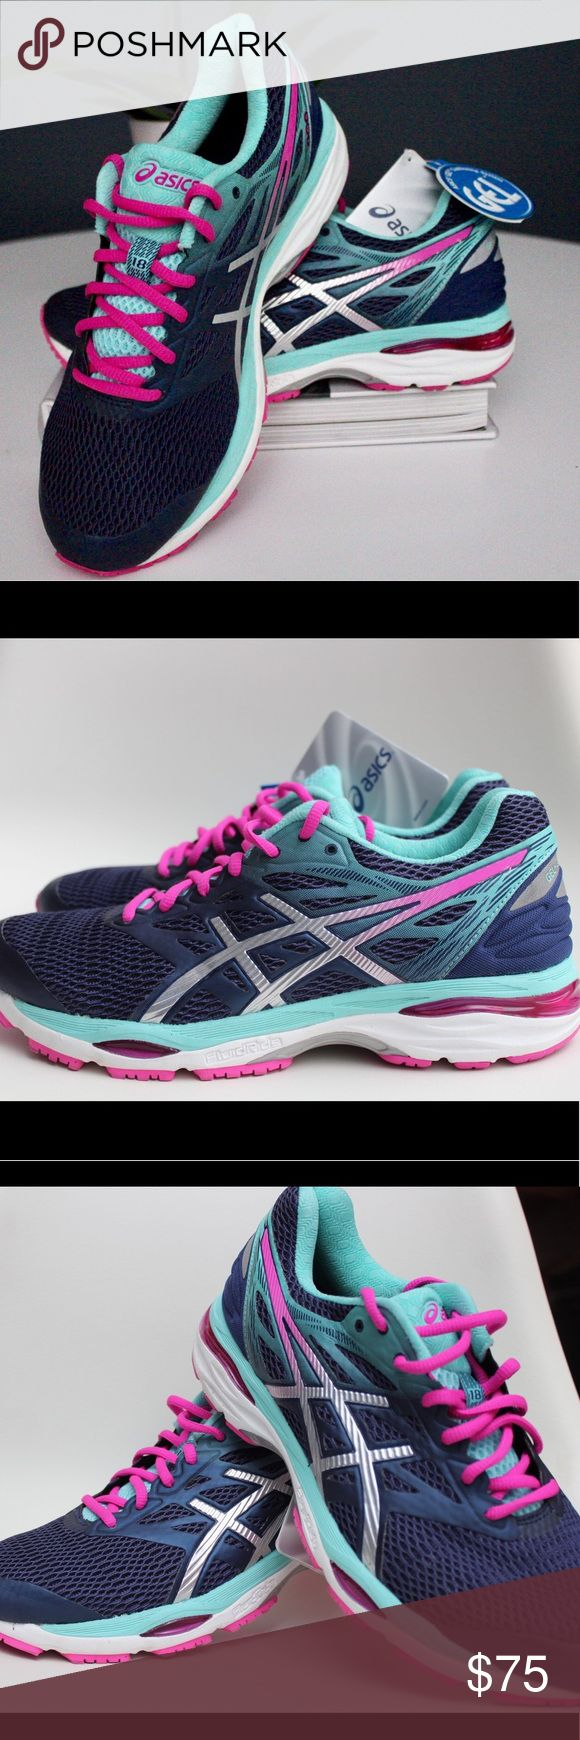 🔥NEW🔥ASICS® Women's Gel-Cumulus® 18 -T6C8N NEW! NEVER WORN! These were only display shoes! Comfort meets cushioning with the ASICS Gel Cumulus 18. Pairing rearfoot and forefoot gel cushioning with FluidRide technology, this daily trainer provides a plush ride for the miles ahead. An Impact Guidance System and guidance line create a smooth and balanced heel-to-toe transition while an open mesh upper offers optimal breathability. NWOB Asics Shoes Sneakers